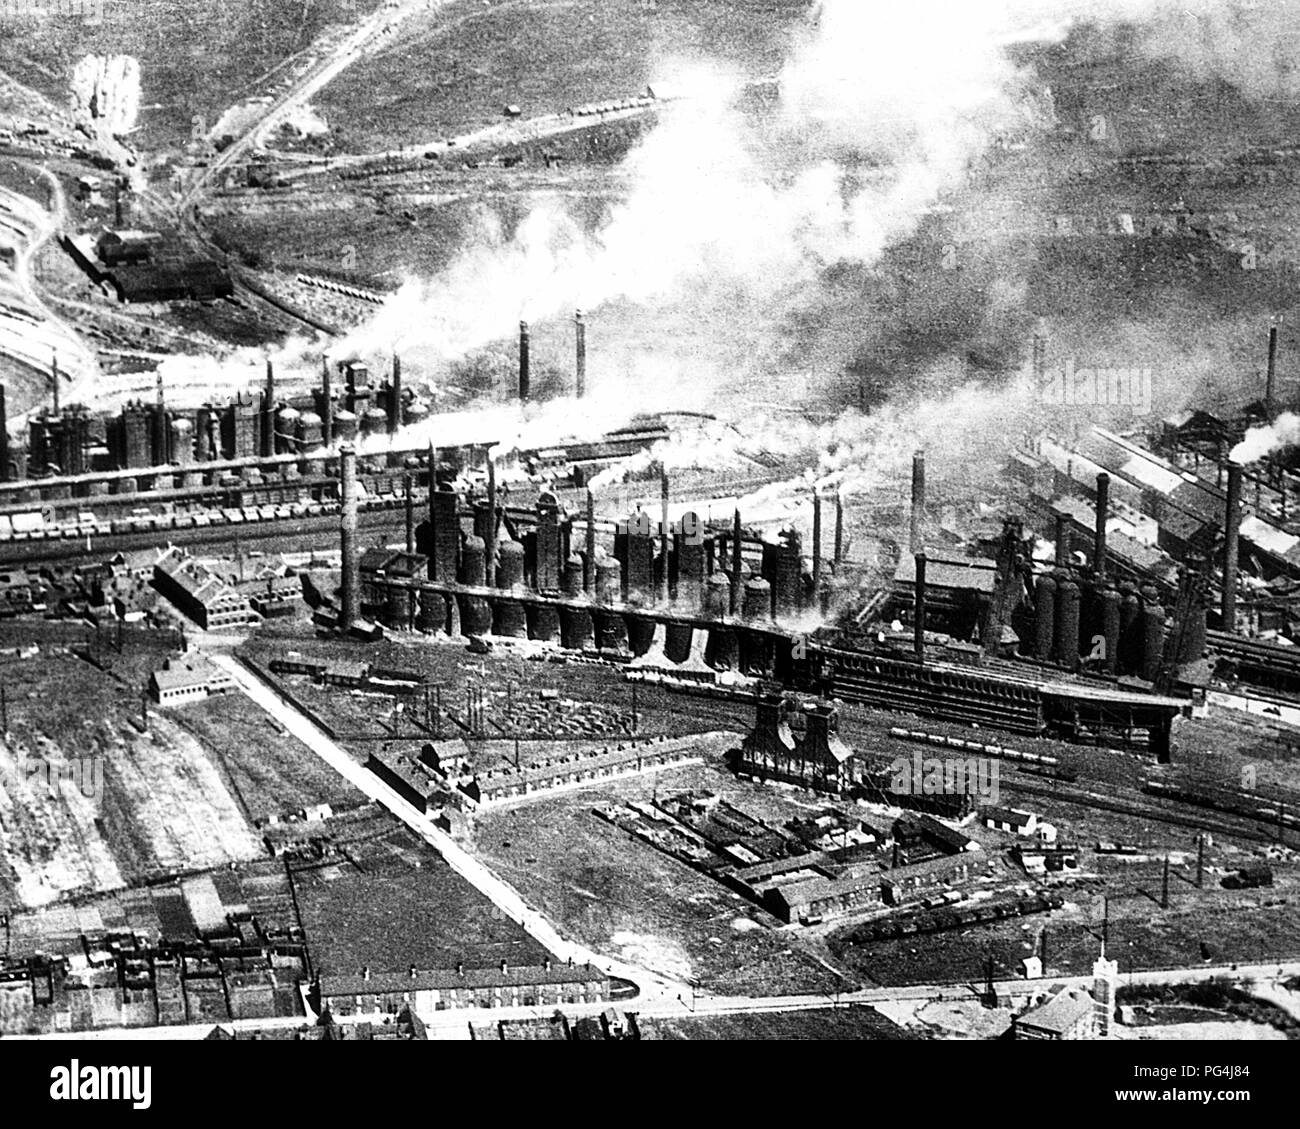 Middlesbrough Steel Works, early 1900s - Stock Image